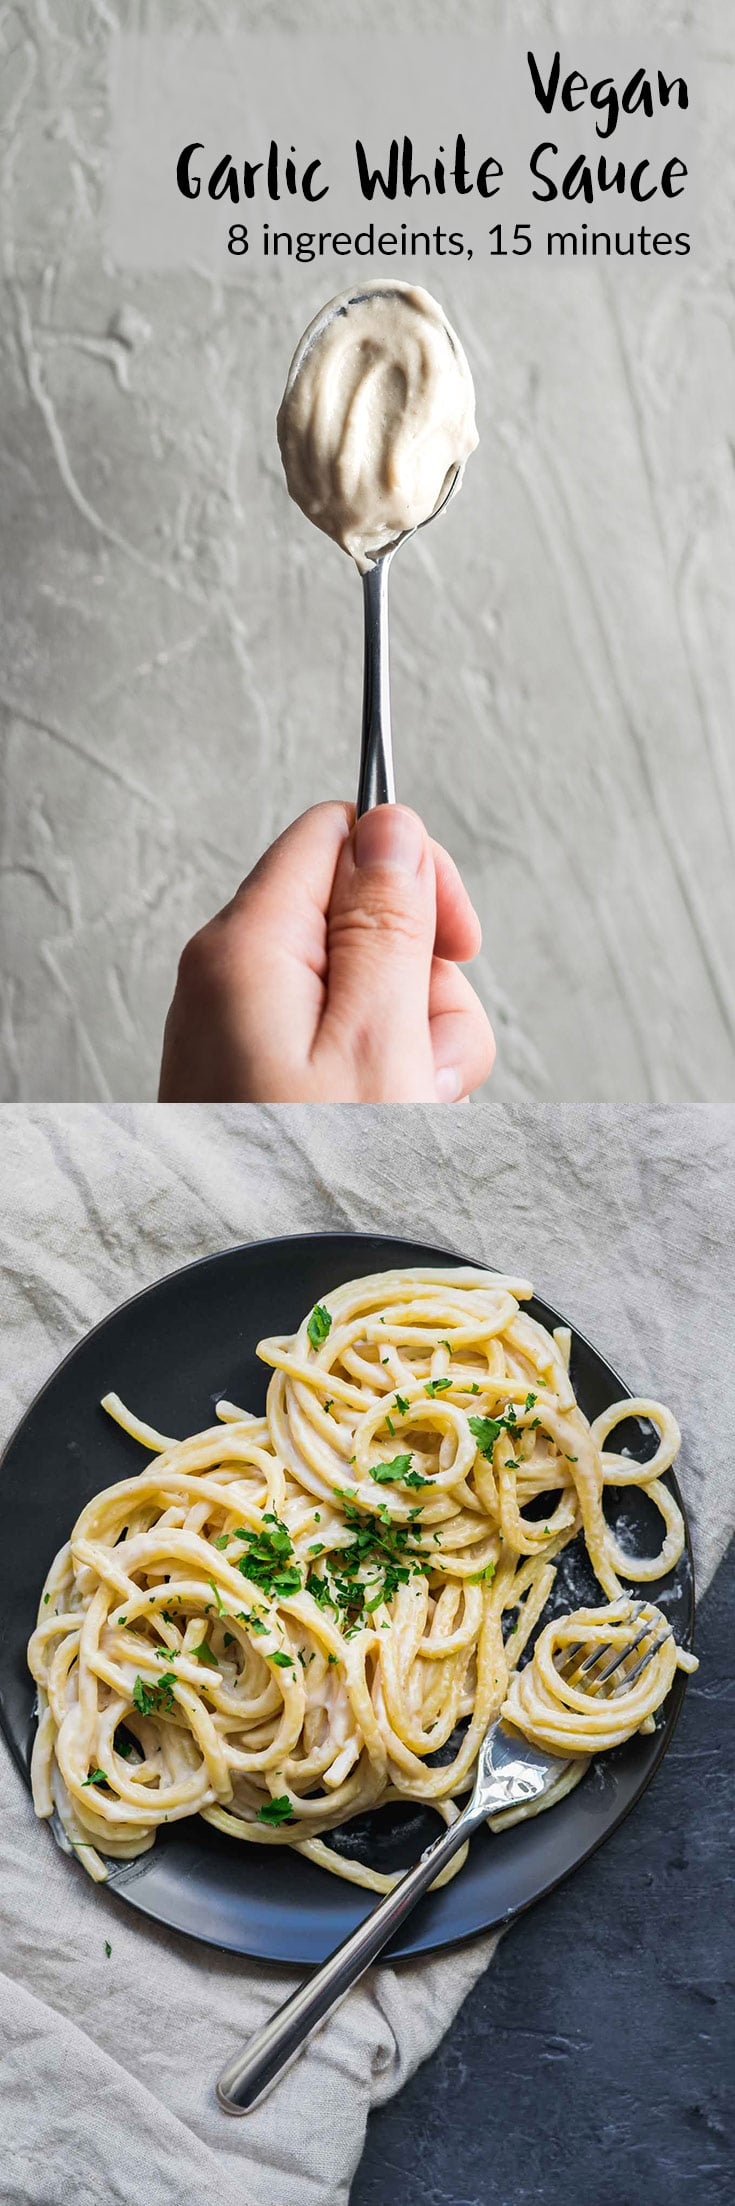 Vegan Garlic White Sauce | A creamy white sauce that's perfect as a base on pizza, as a sauce for pasta, or a dressing for a bowl-style meal, and more! A cashew cream and roux-based vegan sauce. With gluten free and nut free options. | thecuriouschickpea.com #vegan #vegansauce #garlicsauce